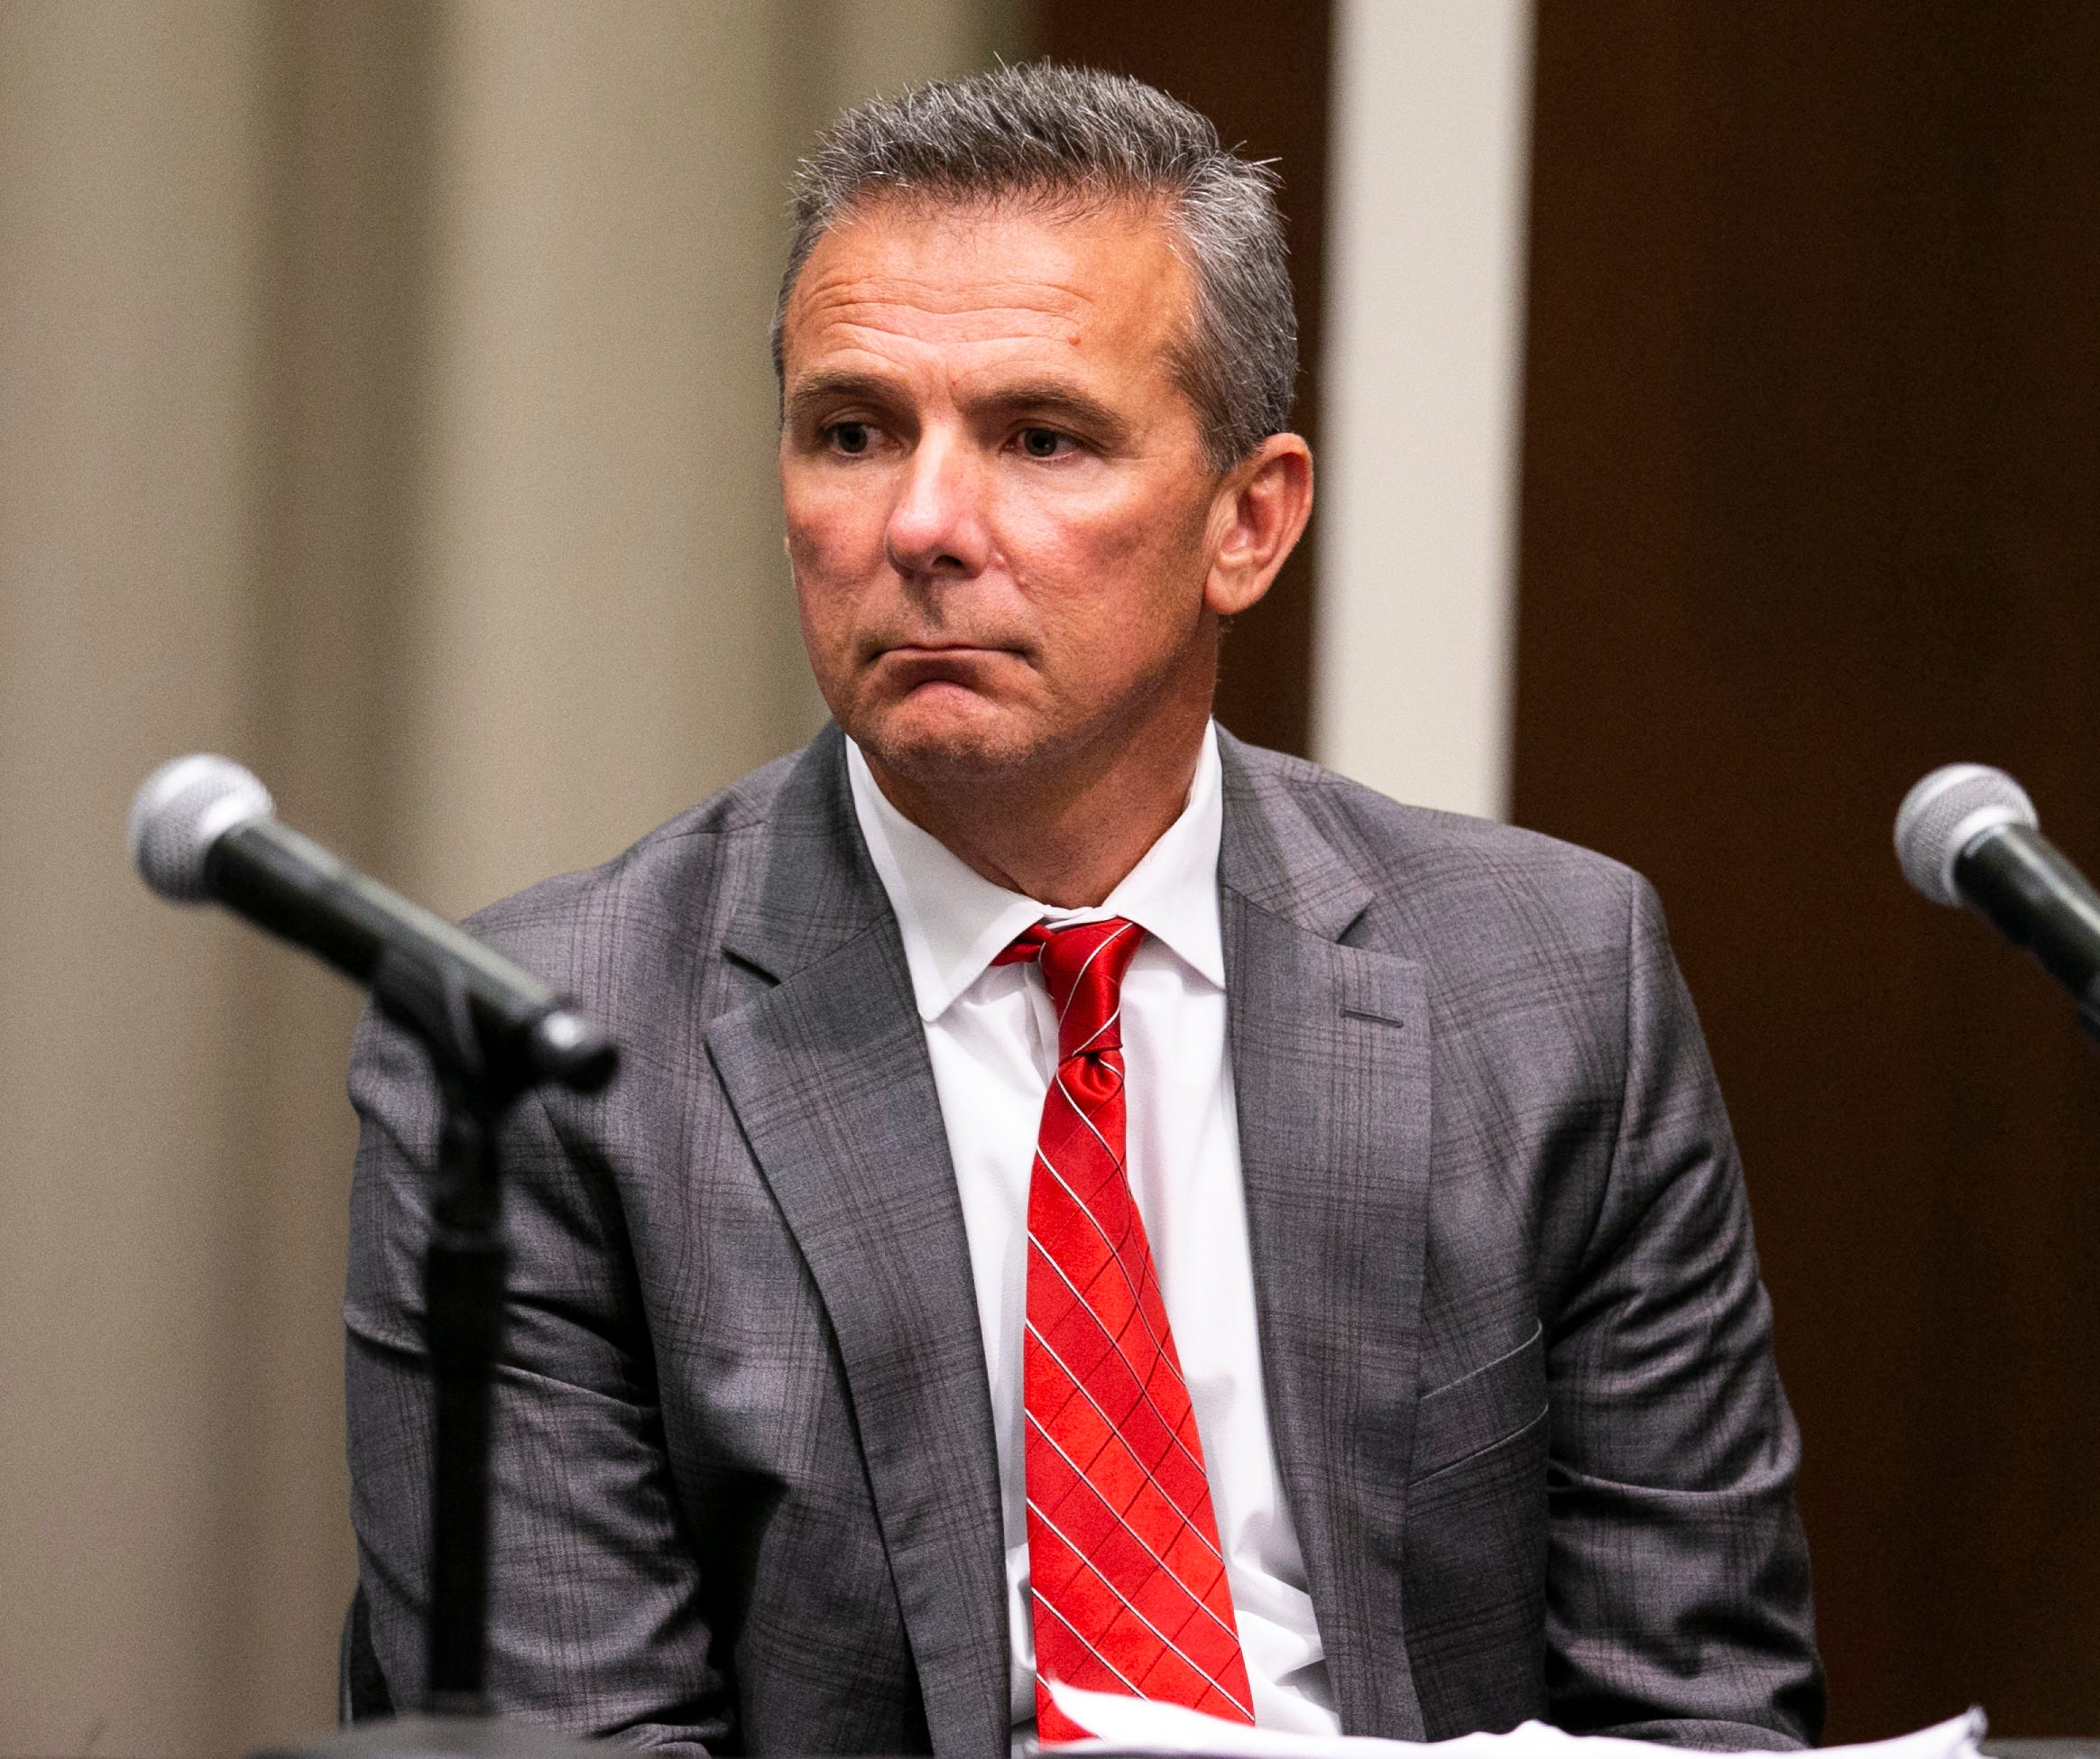 Ohio State's Urban Meyer tweets apology to Courtney Smith, apologizes for 'words and demeanor'